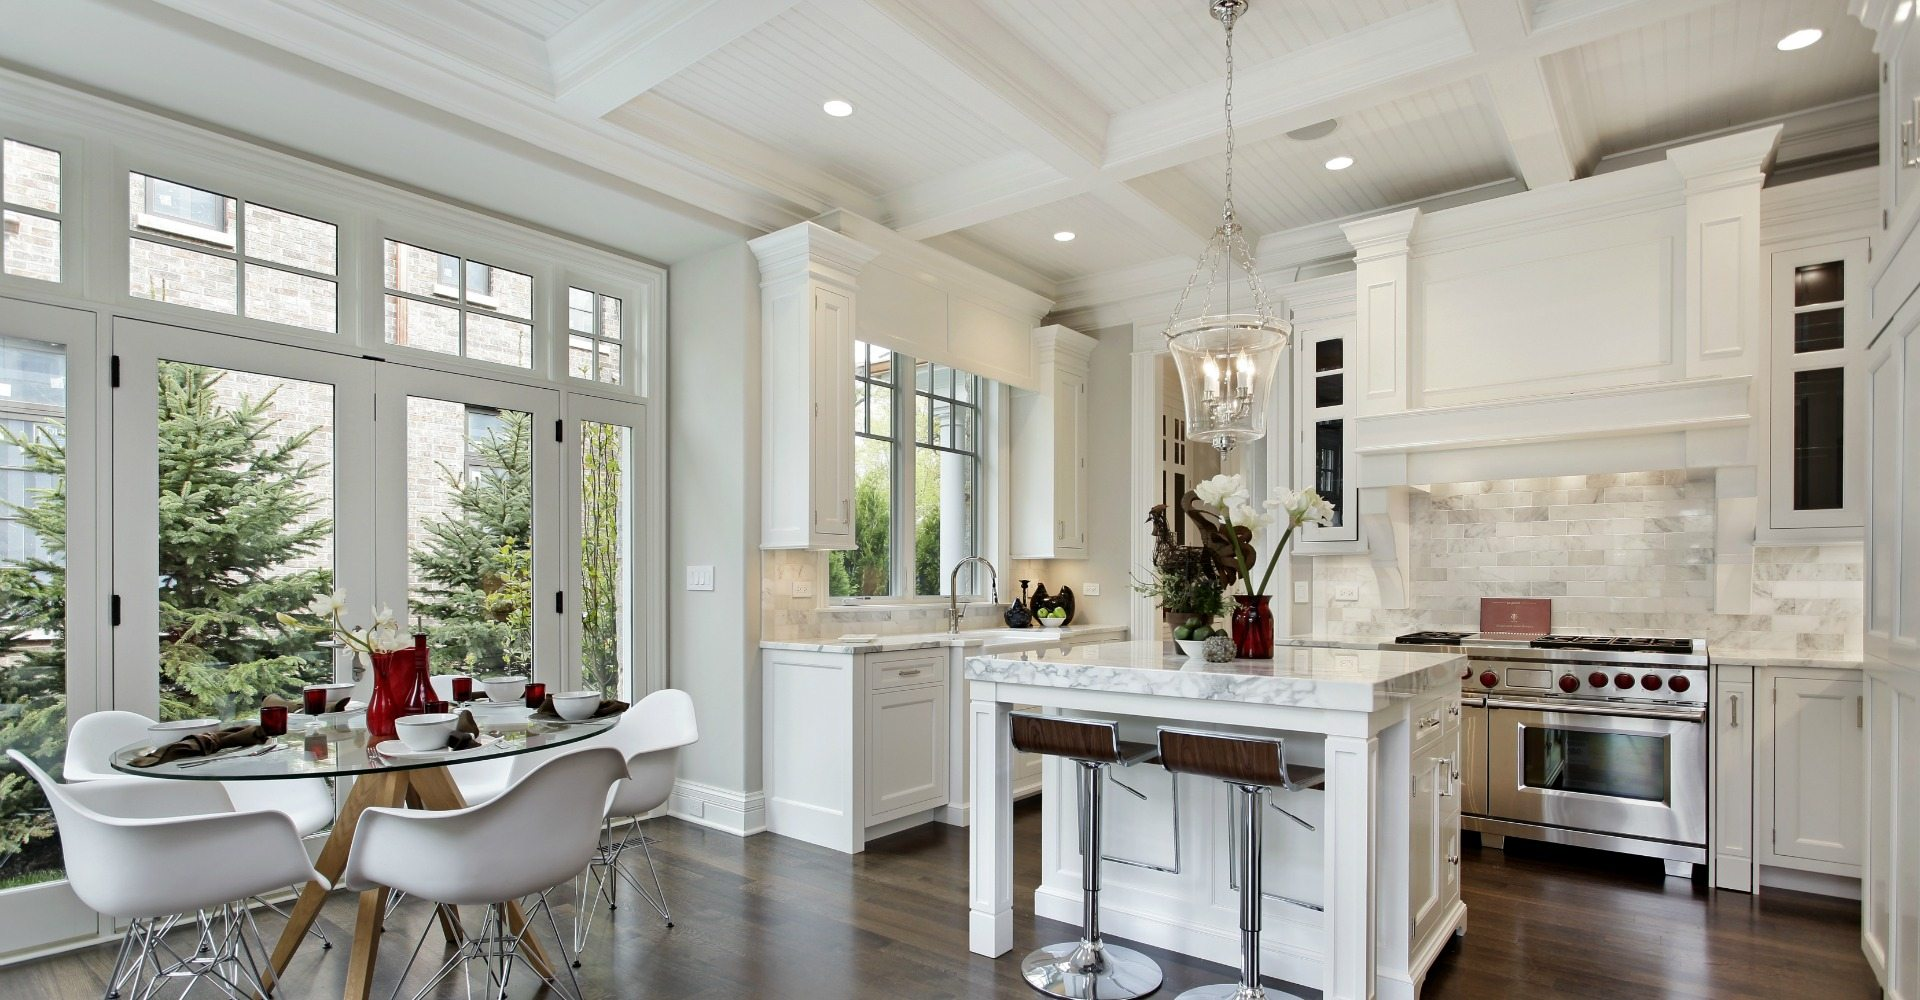 gordon reese construction receives coveted big50 award from remodeling magazine - Kitchen Remodeling Magazine